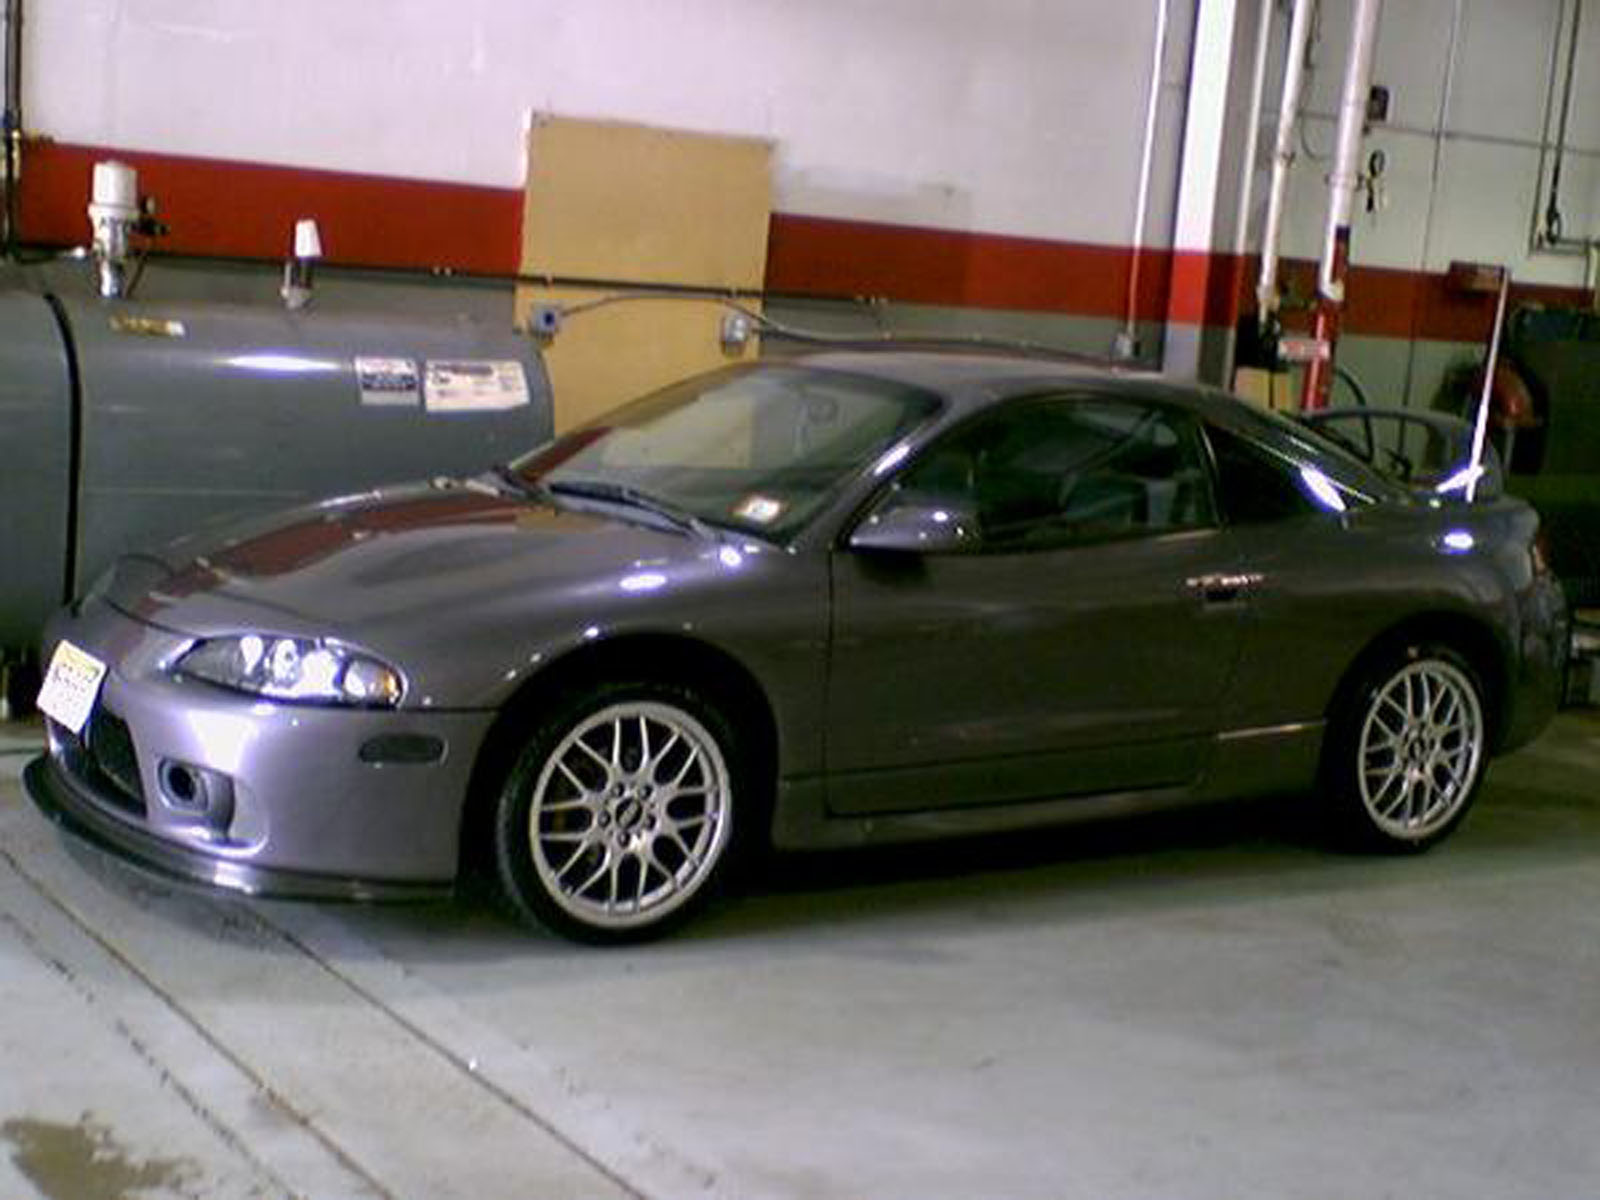 Mitsubishi Eclipse Cost >> 1997 Mitsubishi Eclipse GSX For Sale | Elmwood Park New Jersey